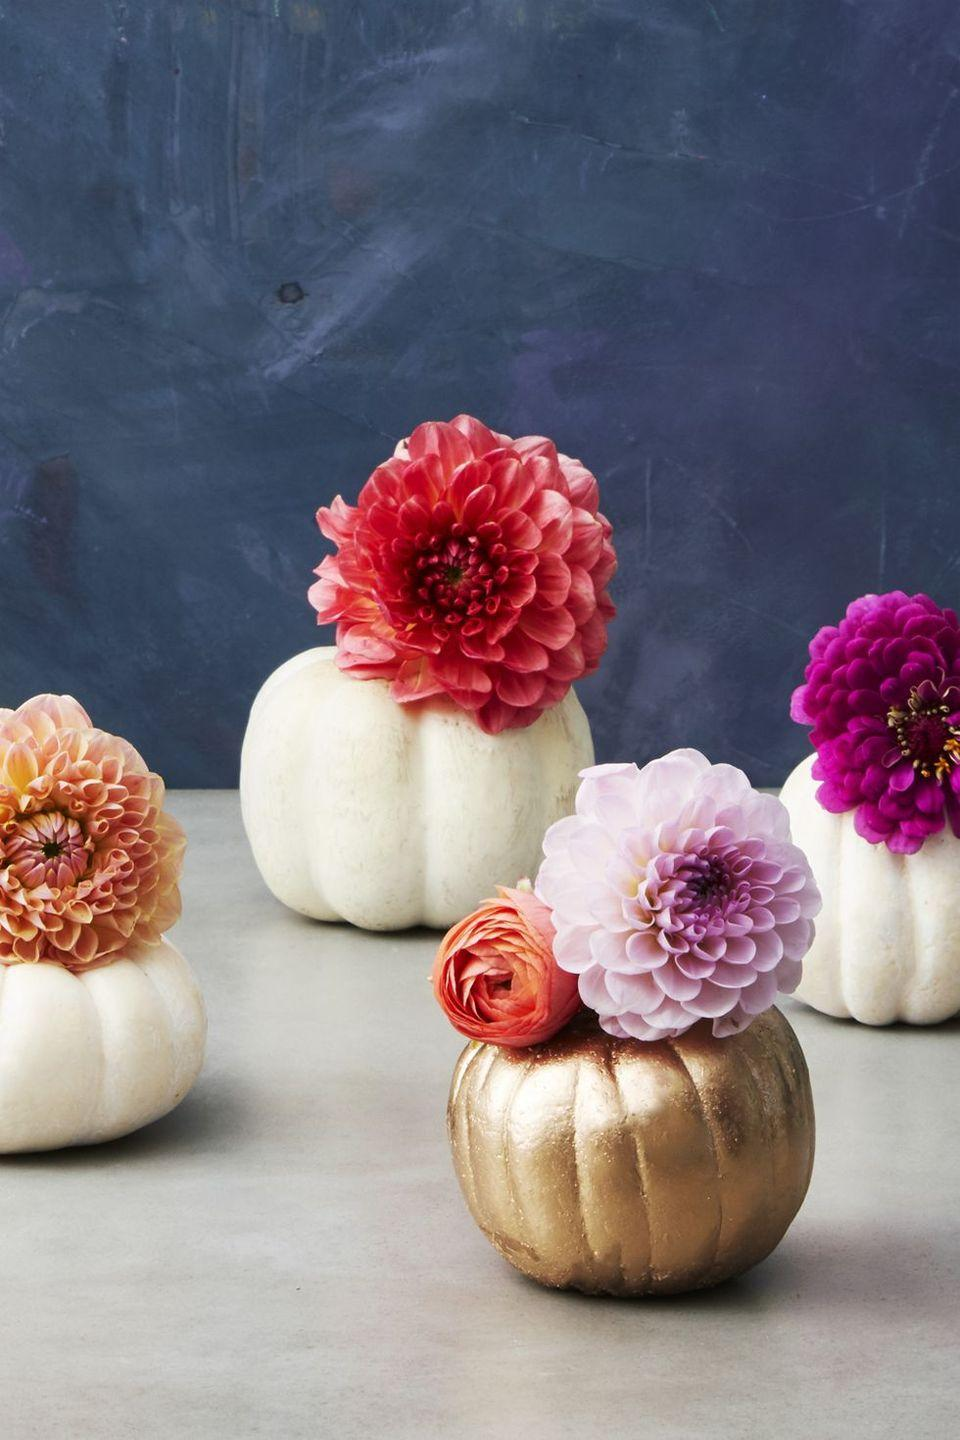 <p>Turn mini pumpkins into pots to show off your favorite blooms, like dahlias, ranunculuses, and mums. To make them, carve your mini pumpkins as you normally would. Then, cut the bottom of a water bottle and slide them right inside the pumpkins, so they function as vases. </p>